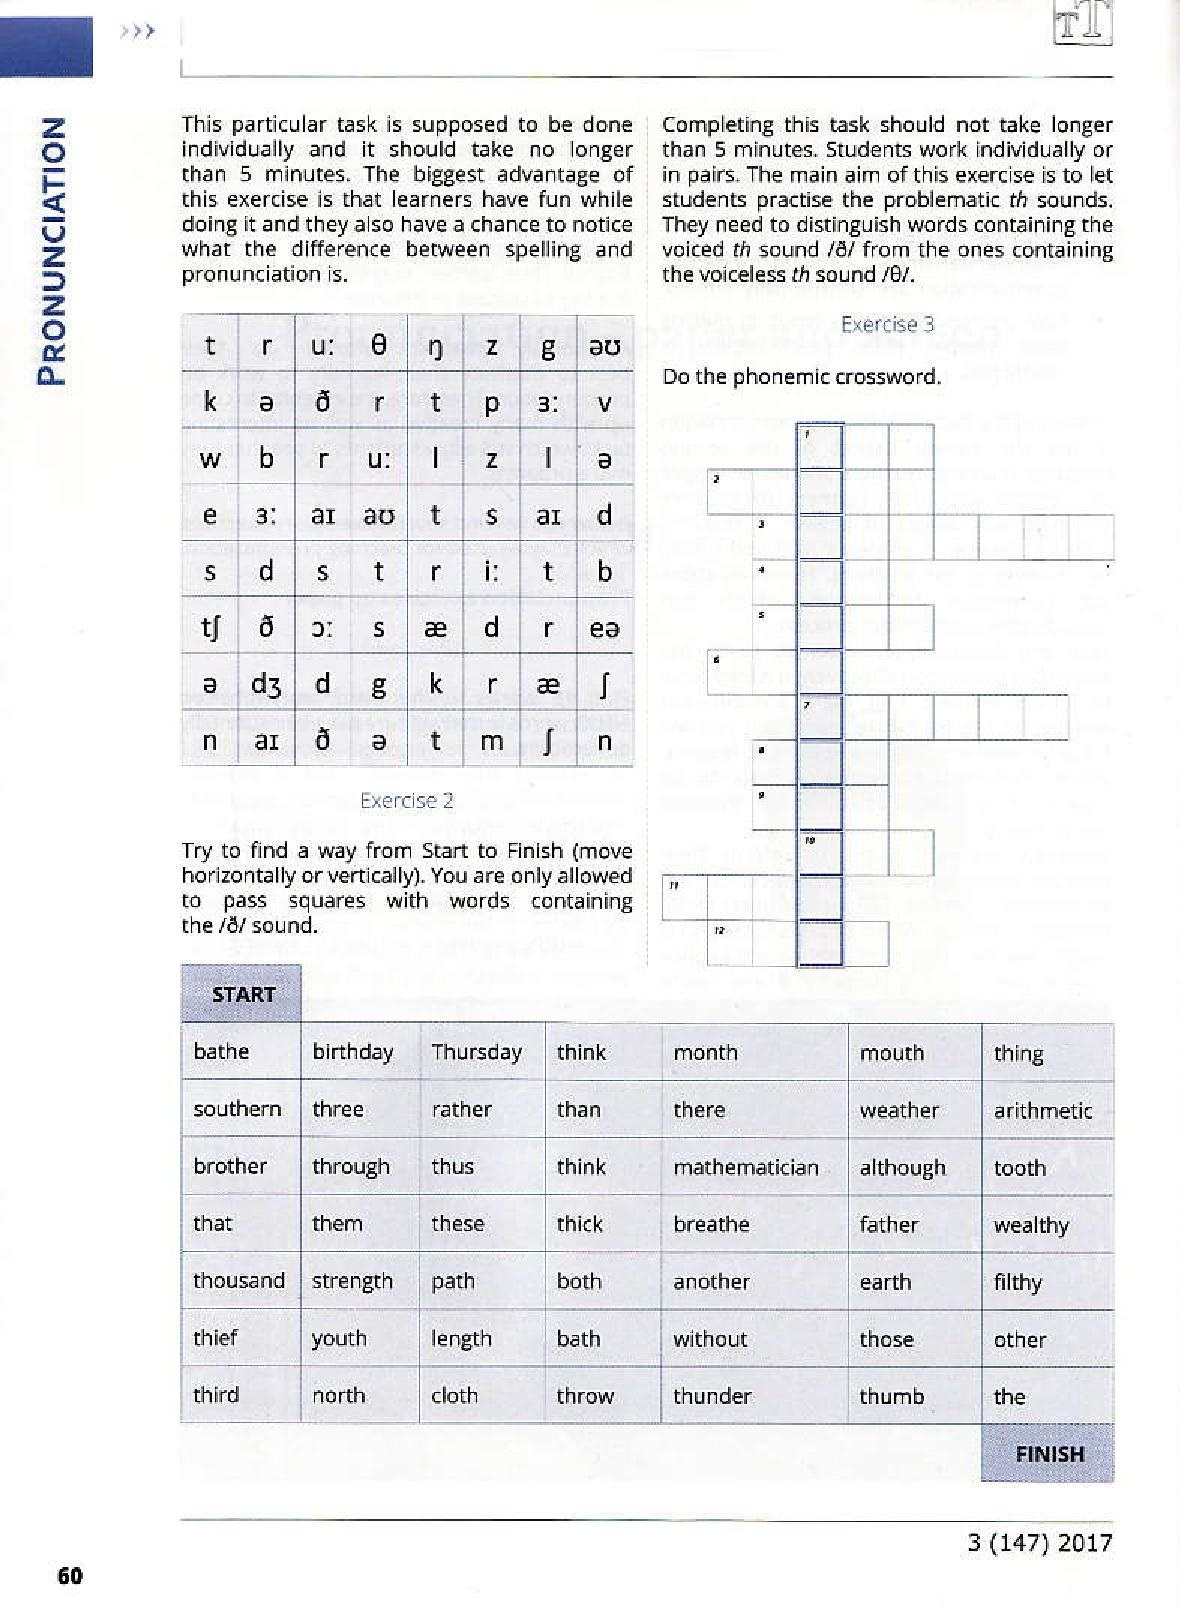 Article pronunciation paper and screen pronunciation page 003 buycottarizona Gallery